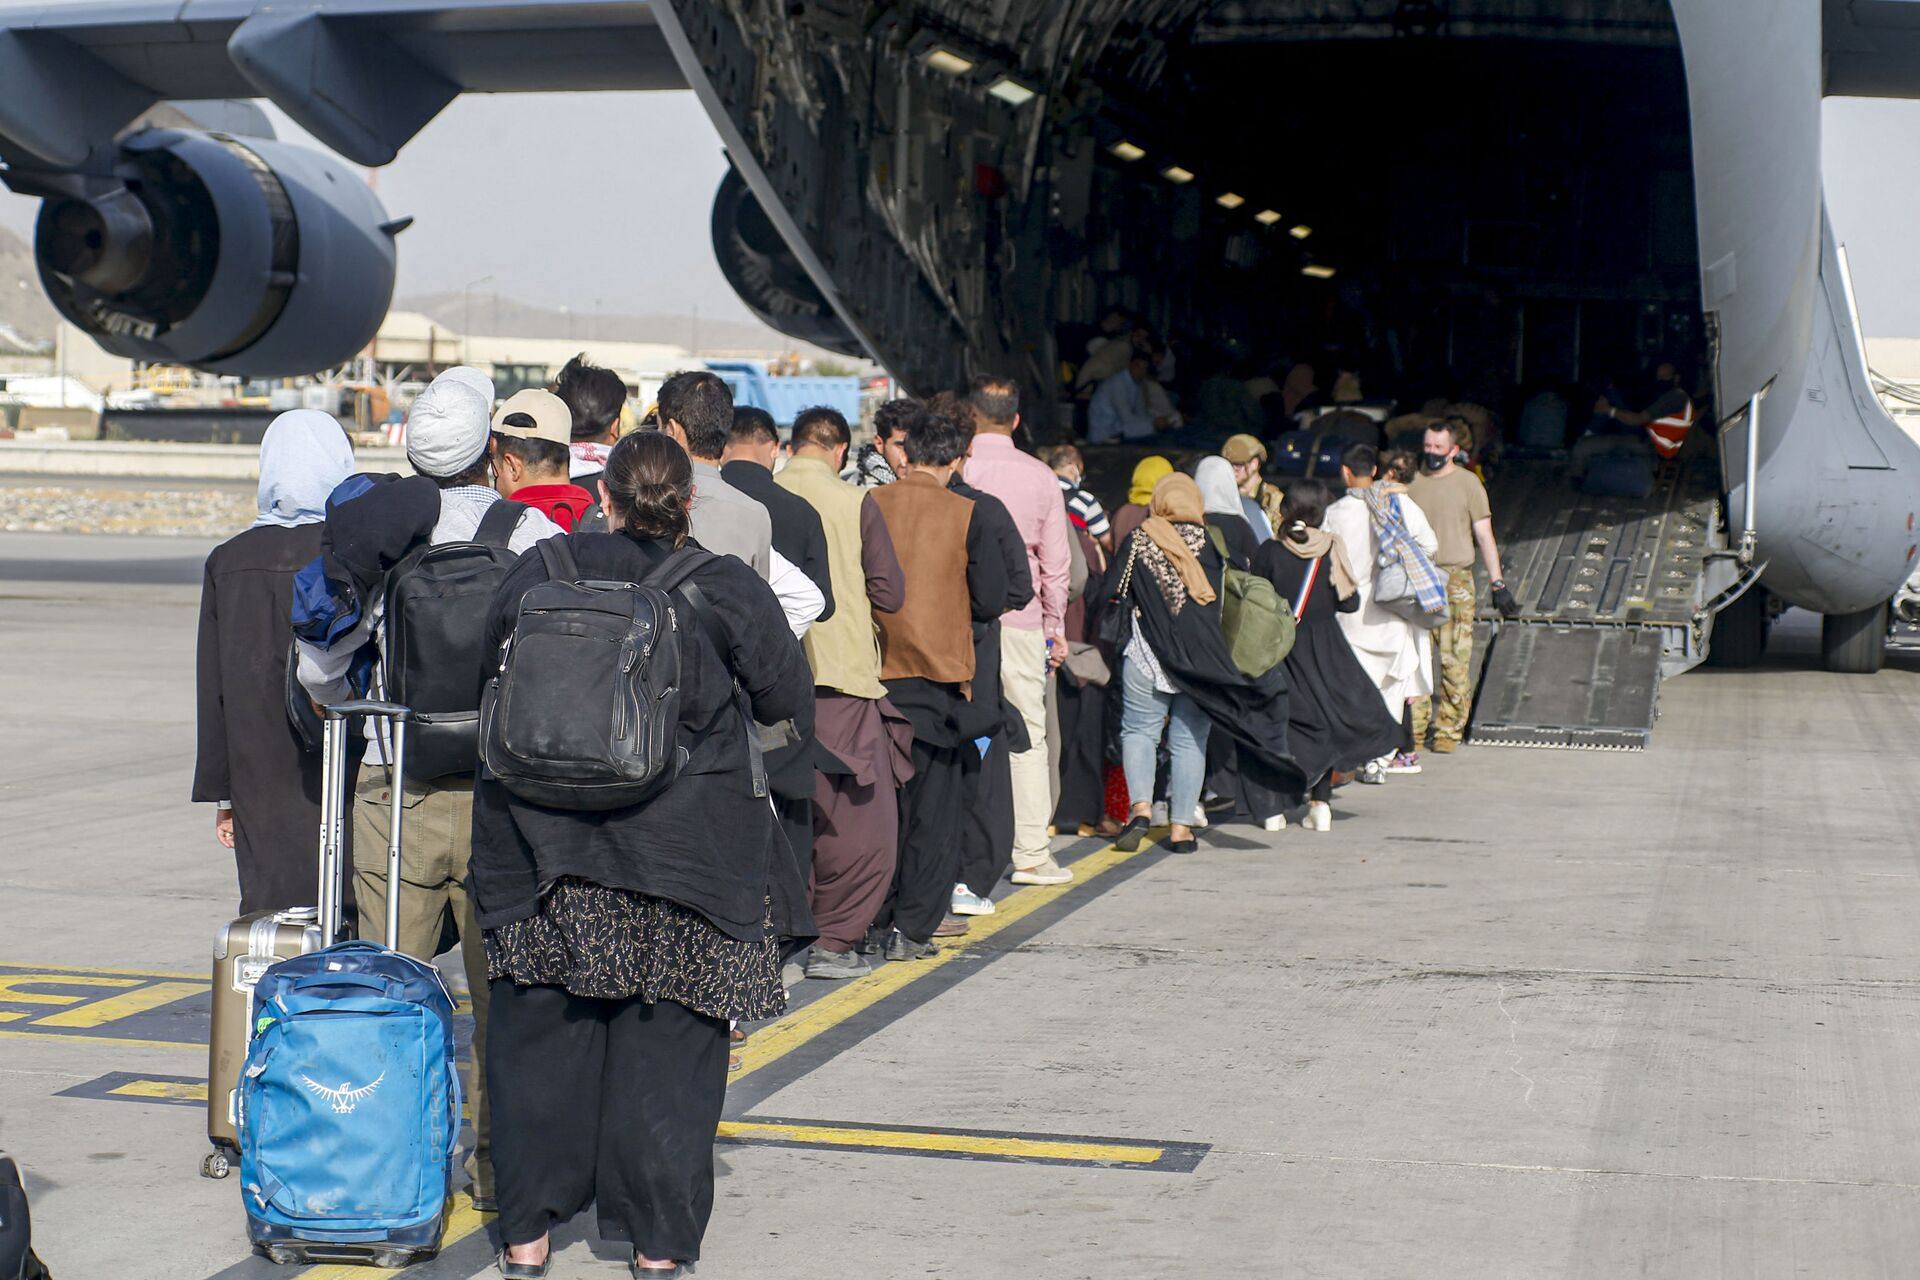 This handout photo courtesy of US Marines Corps shows evacuees stage before boarding a C-17 Globemaster III during an evacuation at Hamid Karzai International Airport, Kabul, Afghanistan, August 18, 2021 - Sputnik International, 1920, 07.09.2021